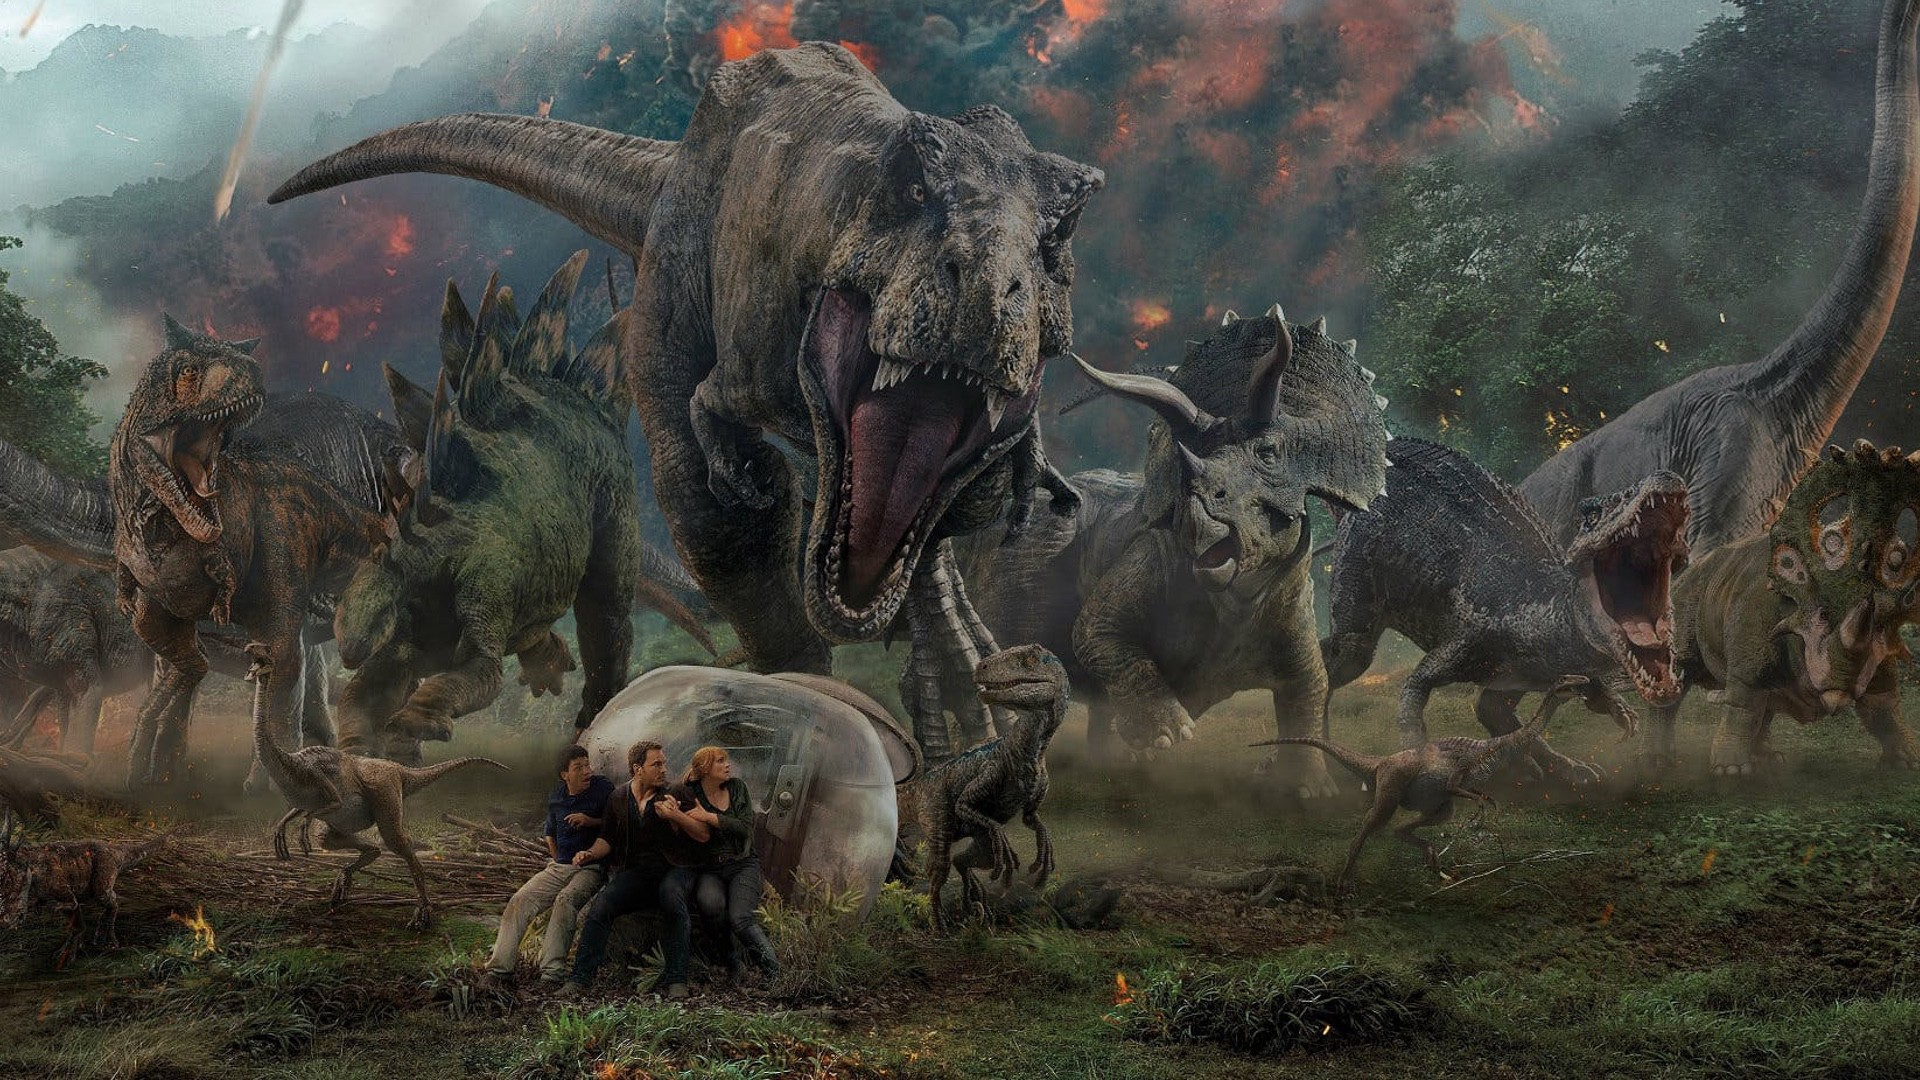 Jurrasic World 2